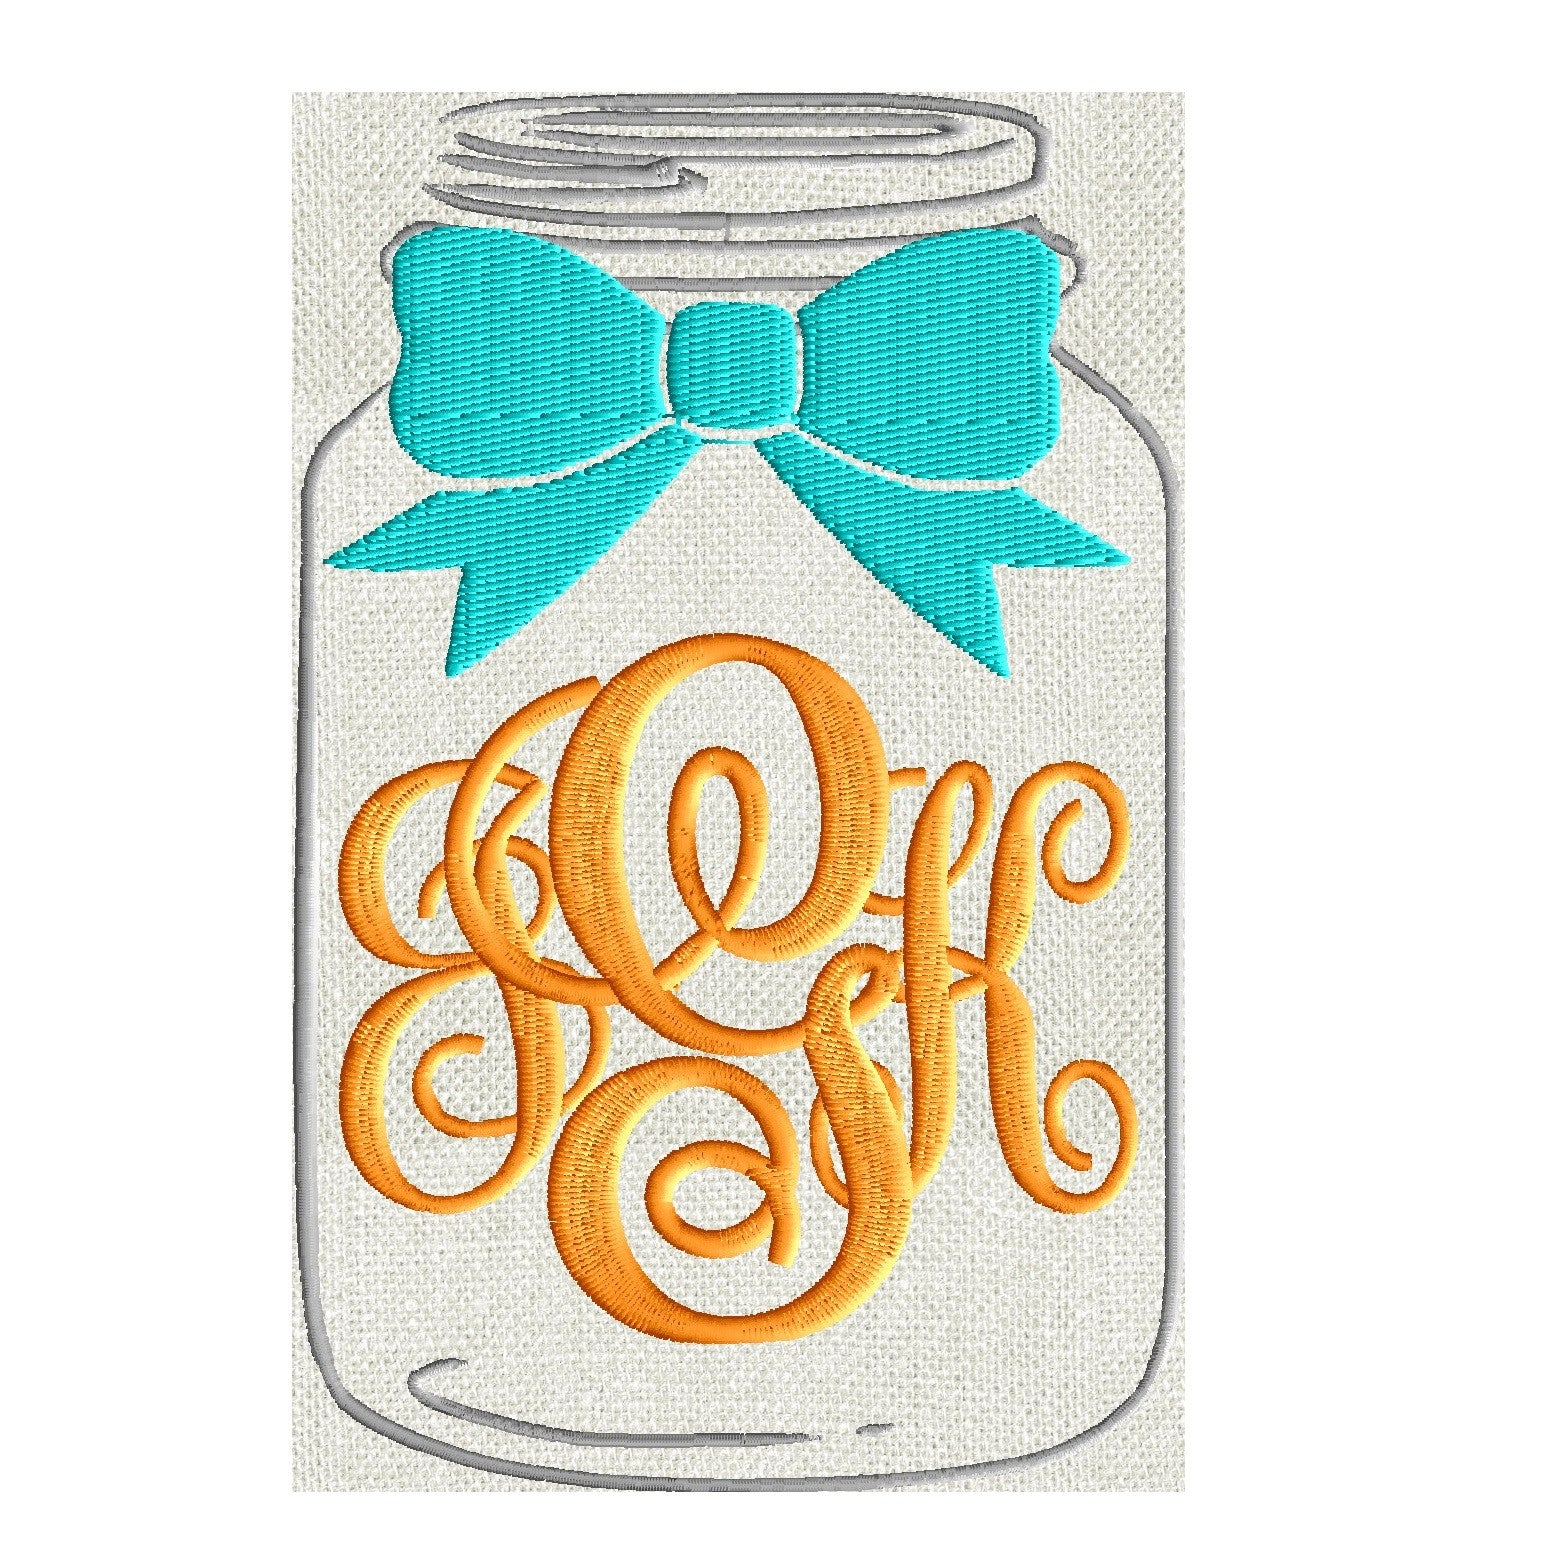 Mason Jar & Bow Frame Monogram -Font not included - EMBROIDERY DESIGN - Instant download 2 sizes Vp3 Hus Dst Exp Jef Pes file formats